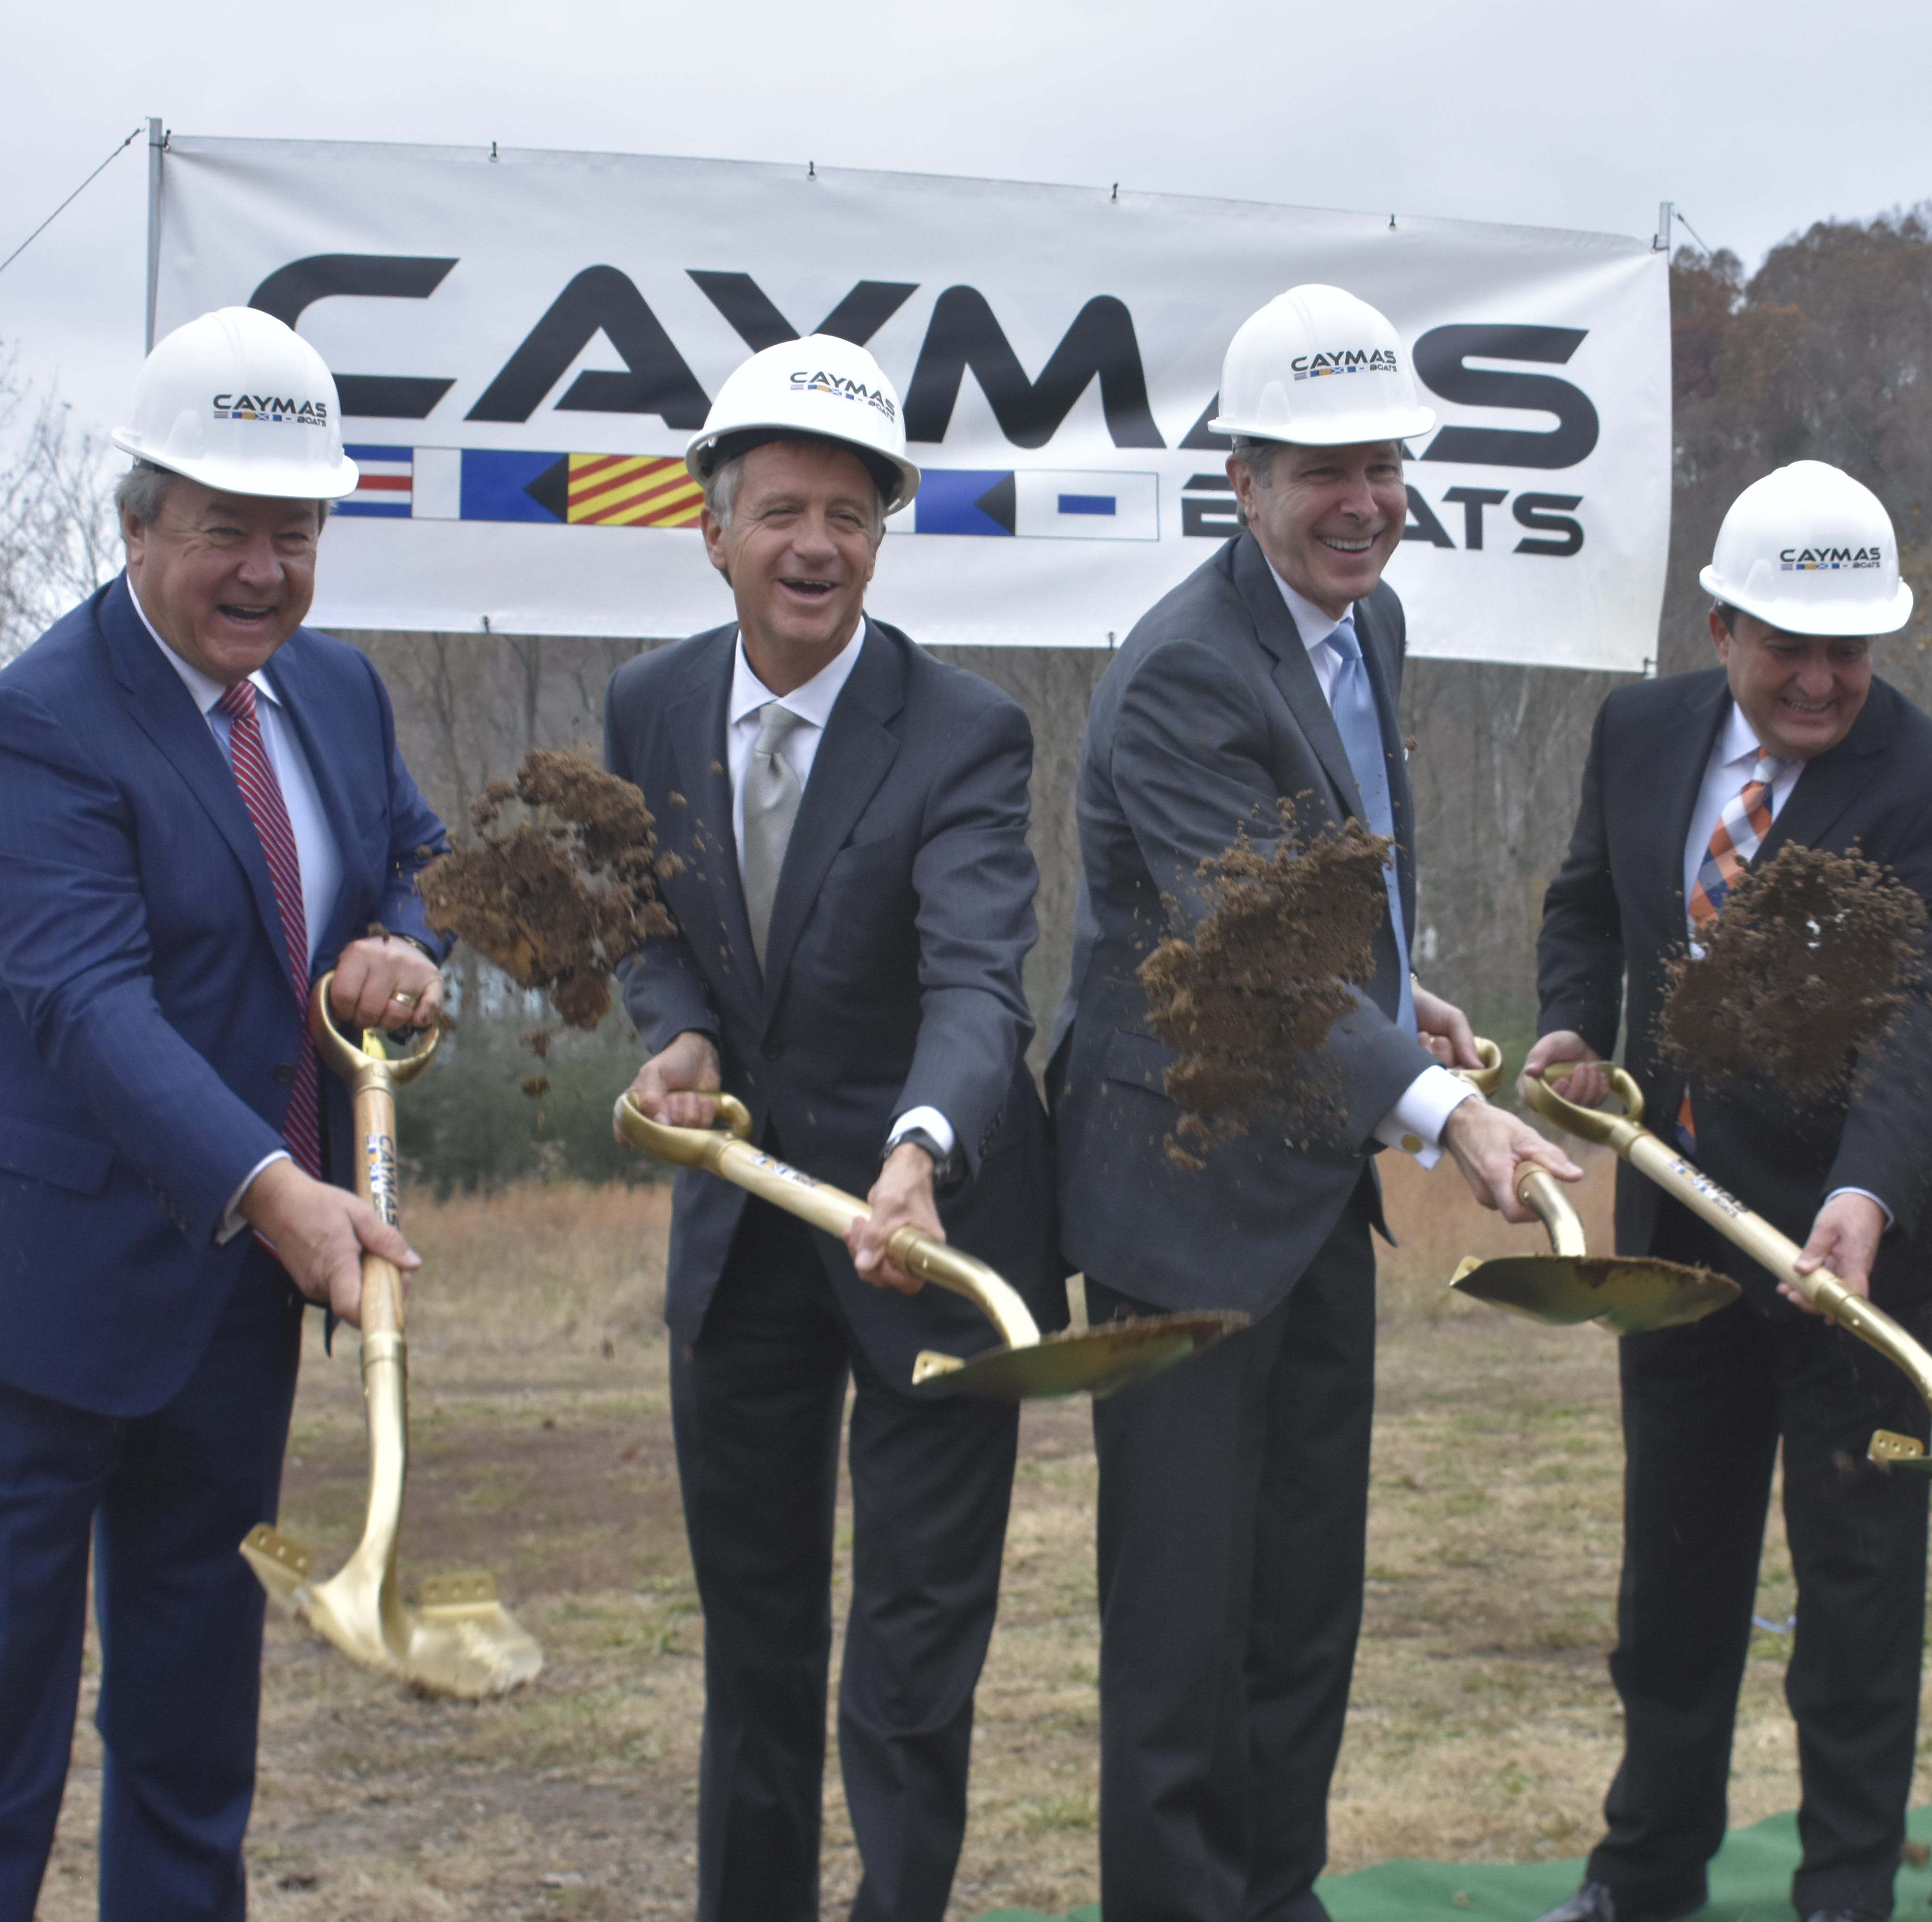 Caymas Boats will invest $30.3 million, create 280 jobs in Ashland City